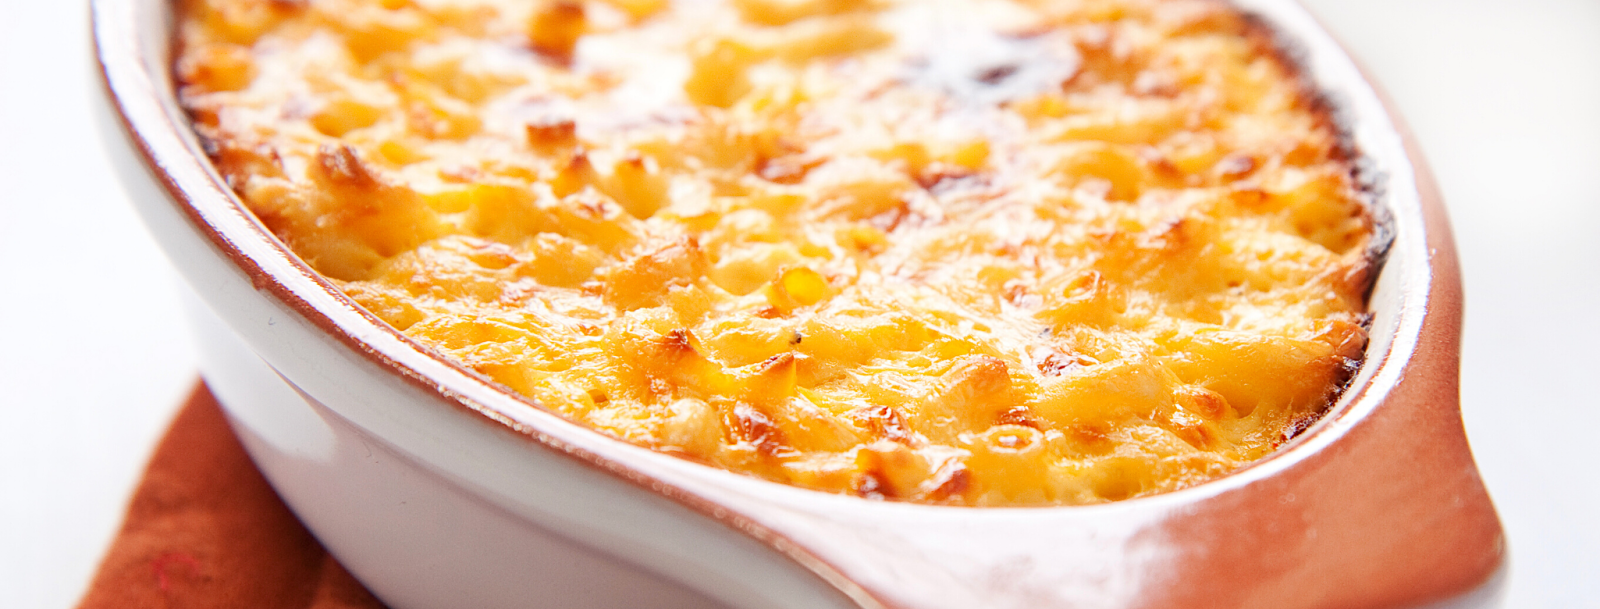 Image ofA Healthier Spin on Mac and Cheese